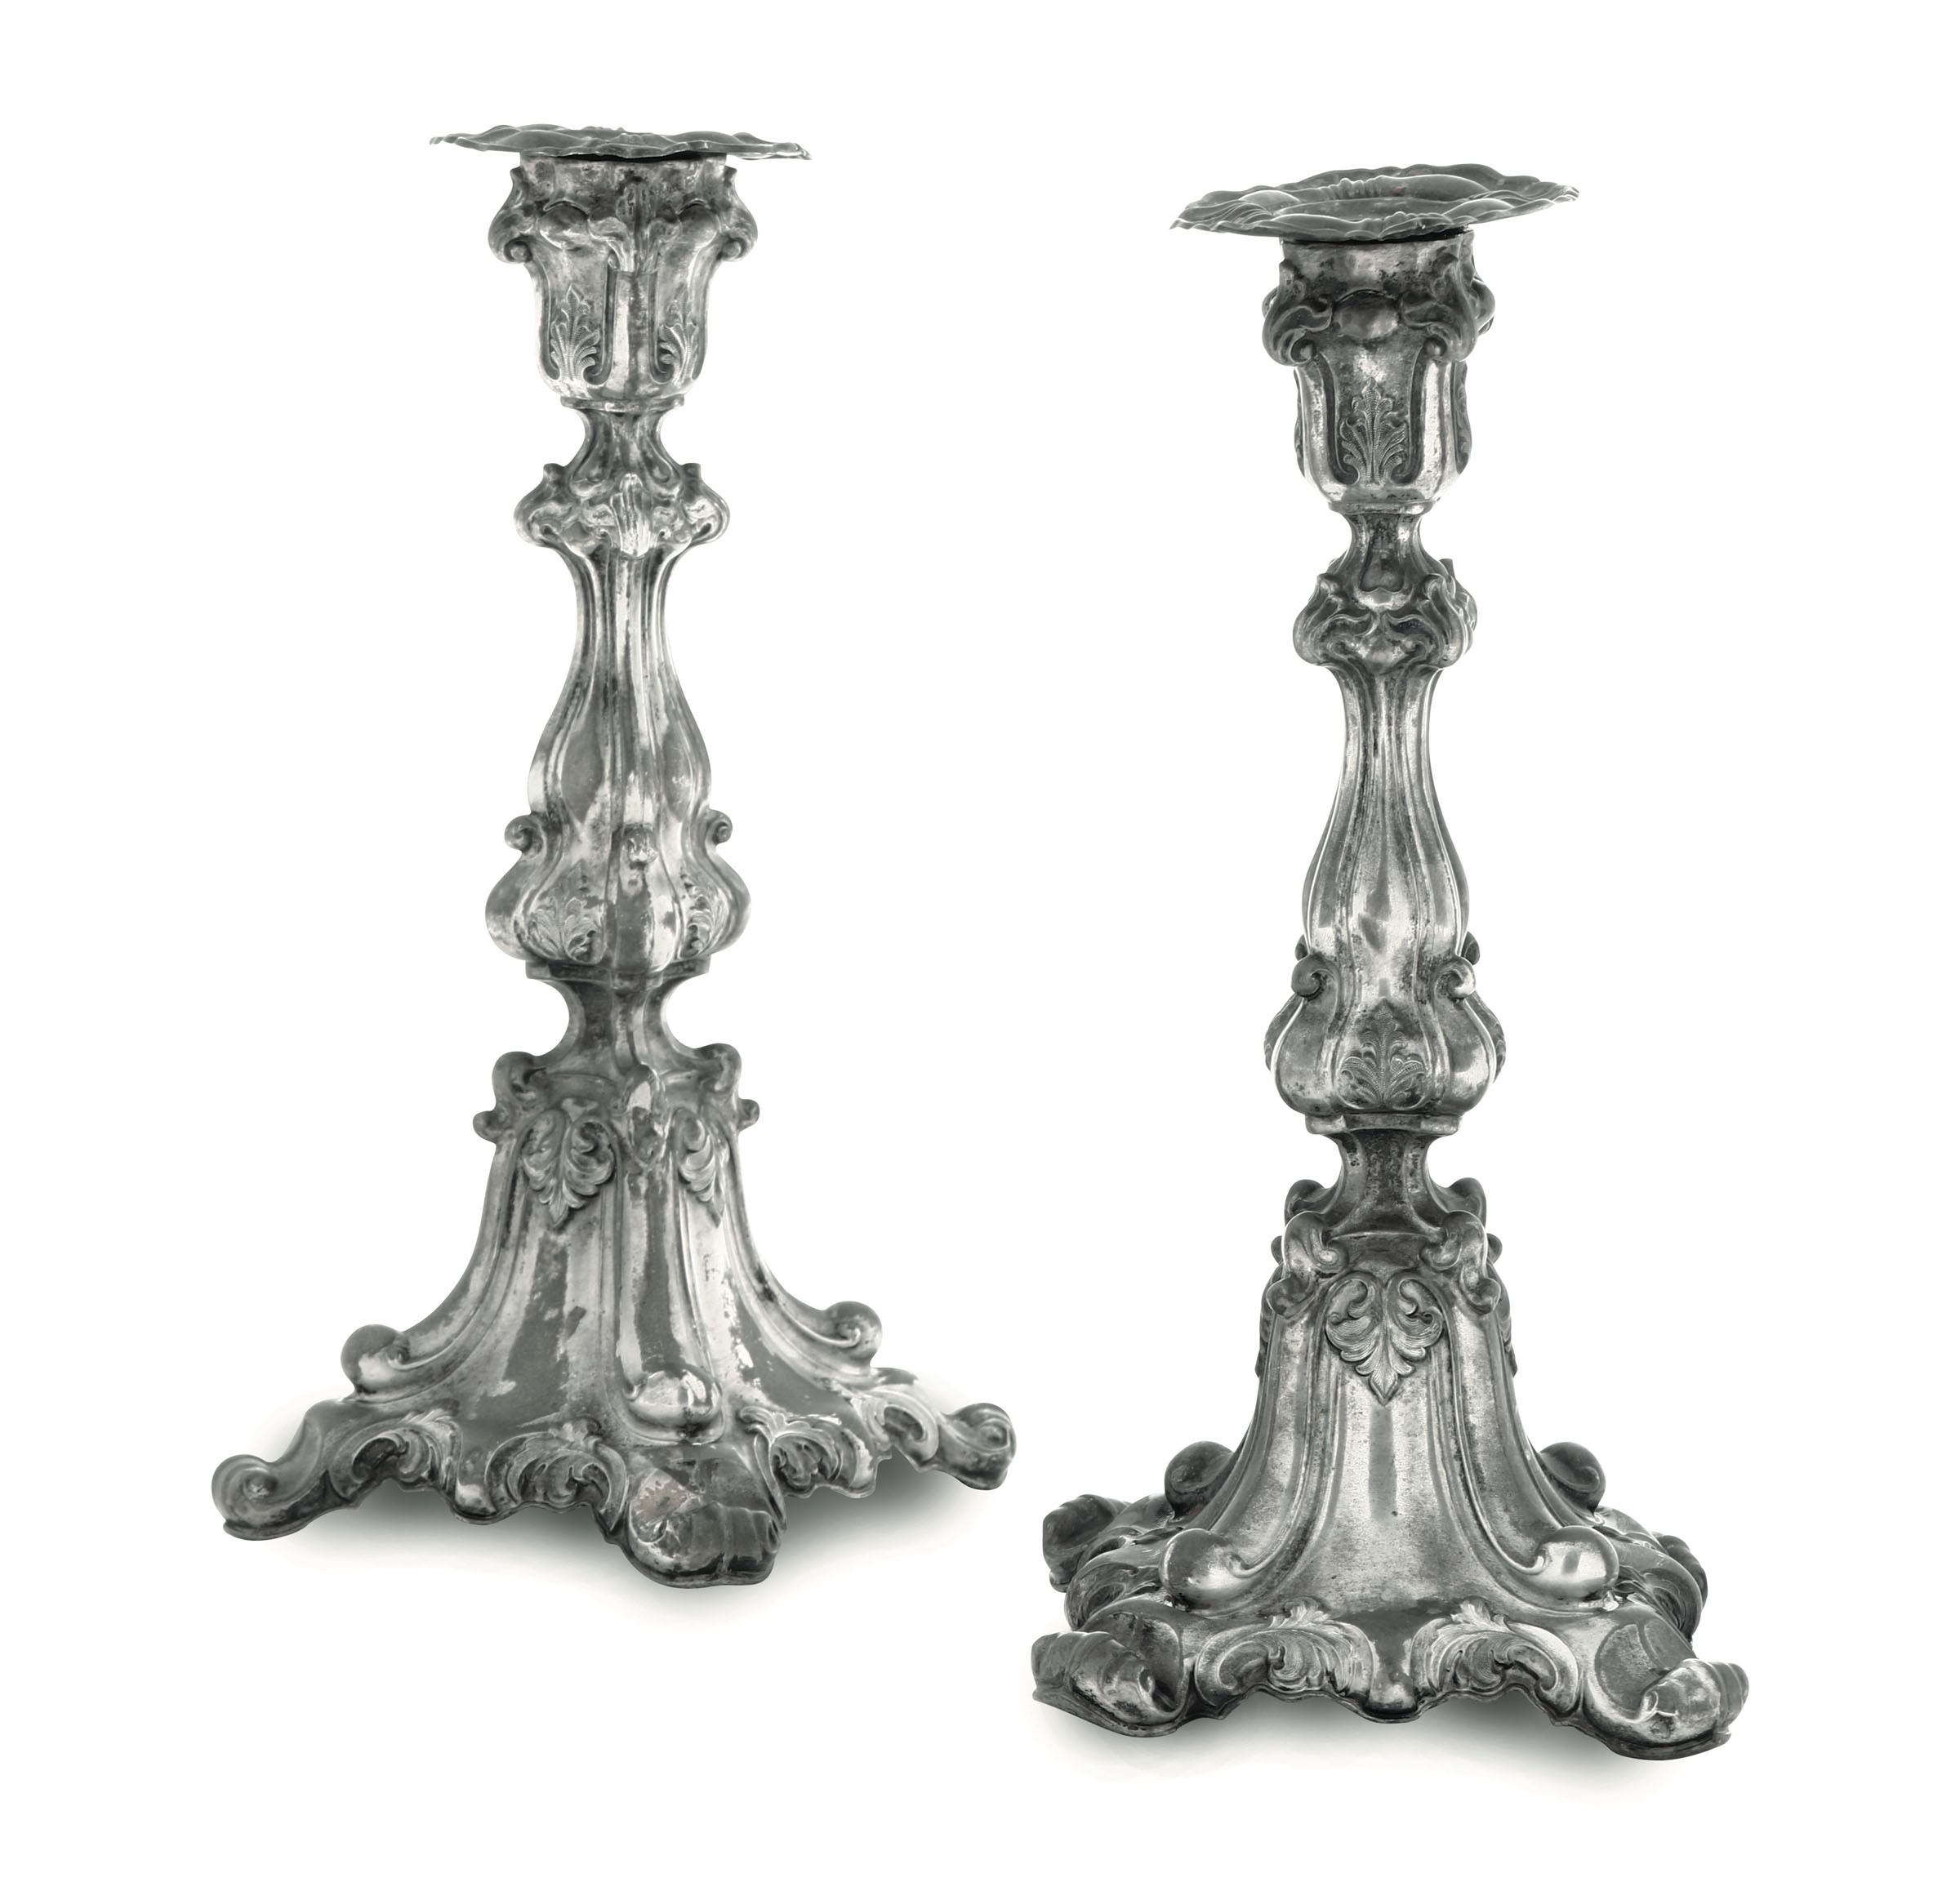 Lot 55 - Two silver candle holders, Austria-Hungary, late 1800s - Chiselled silver. Apparently [...]